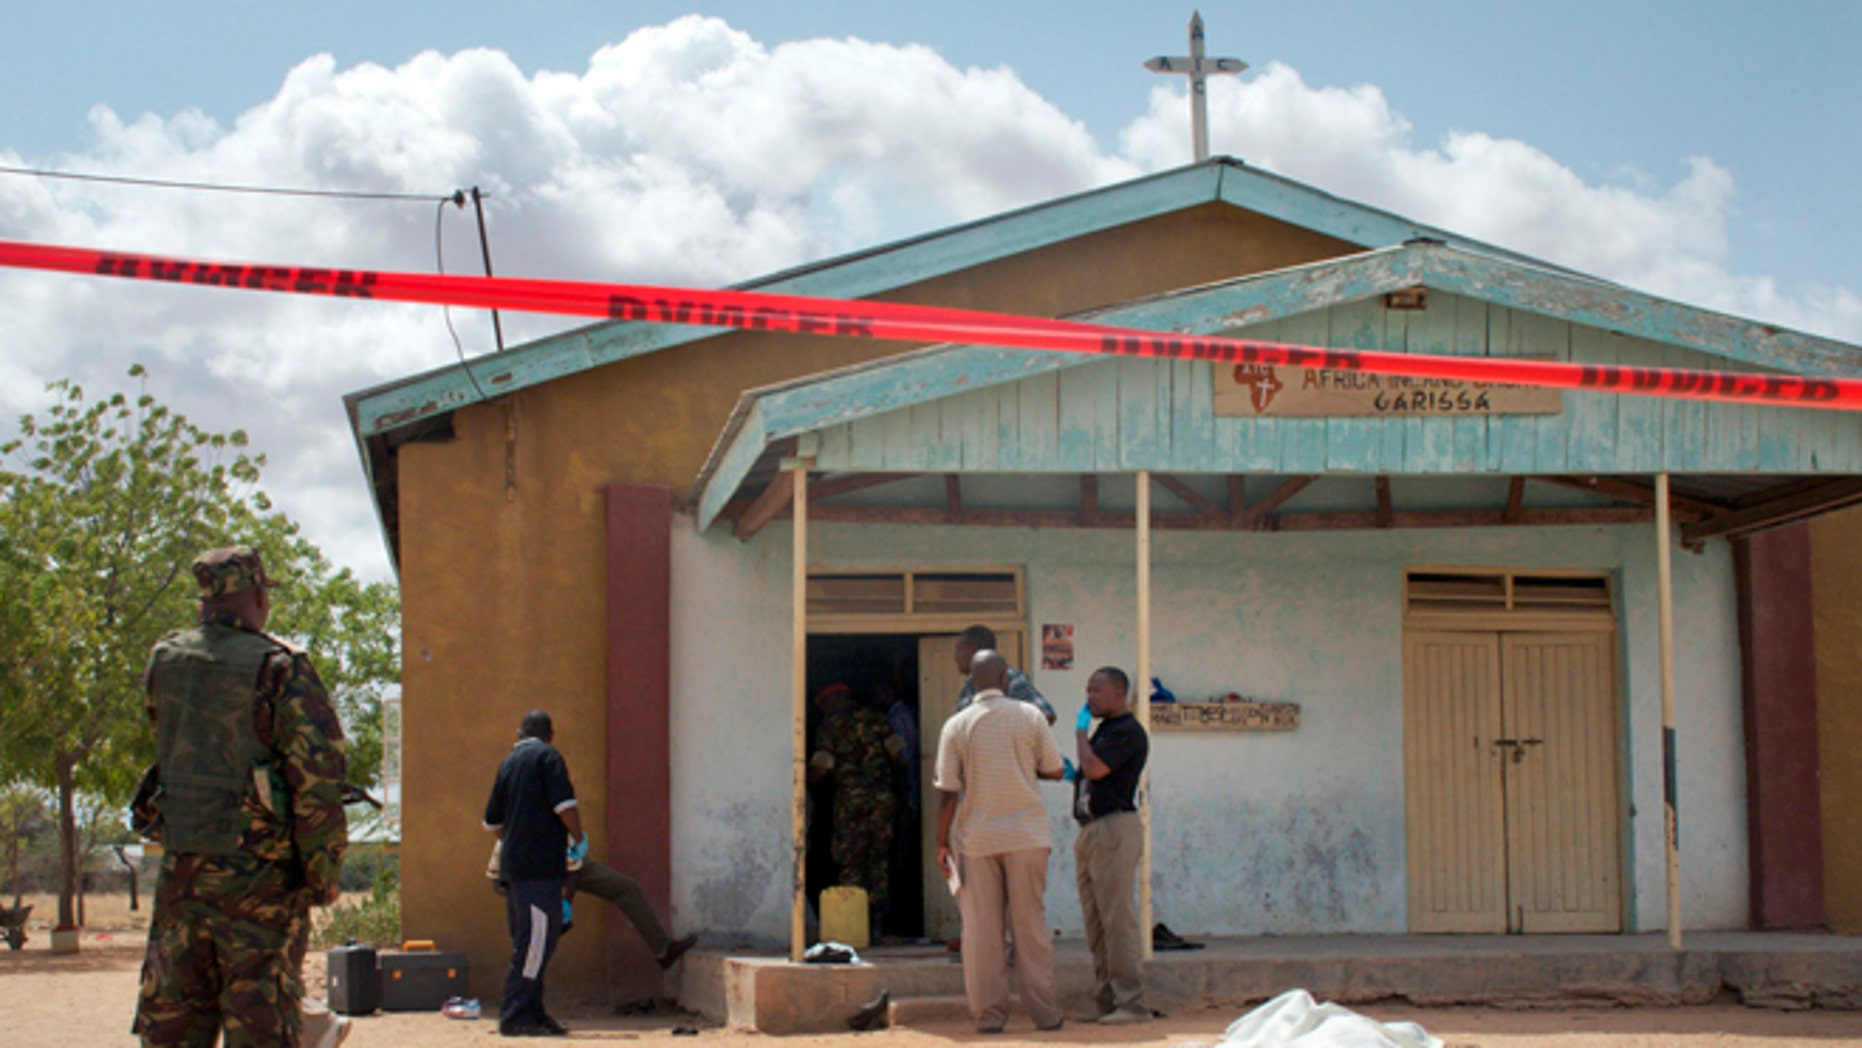 July 1, 2012: Members of the Kenyan security forces inspect the scene, as a body lies covered by a sheet, outside the African Inland Church in Garissa, Kenya.